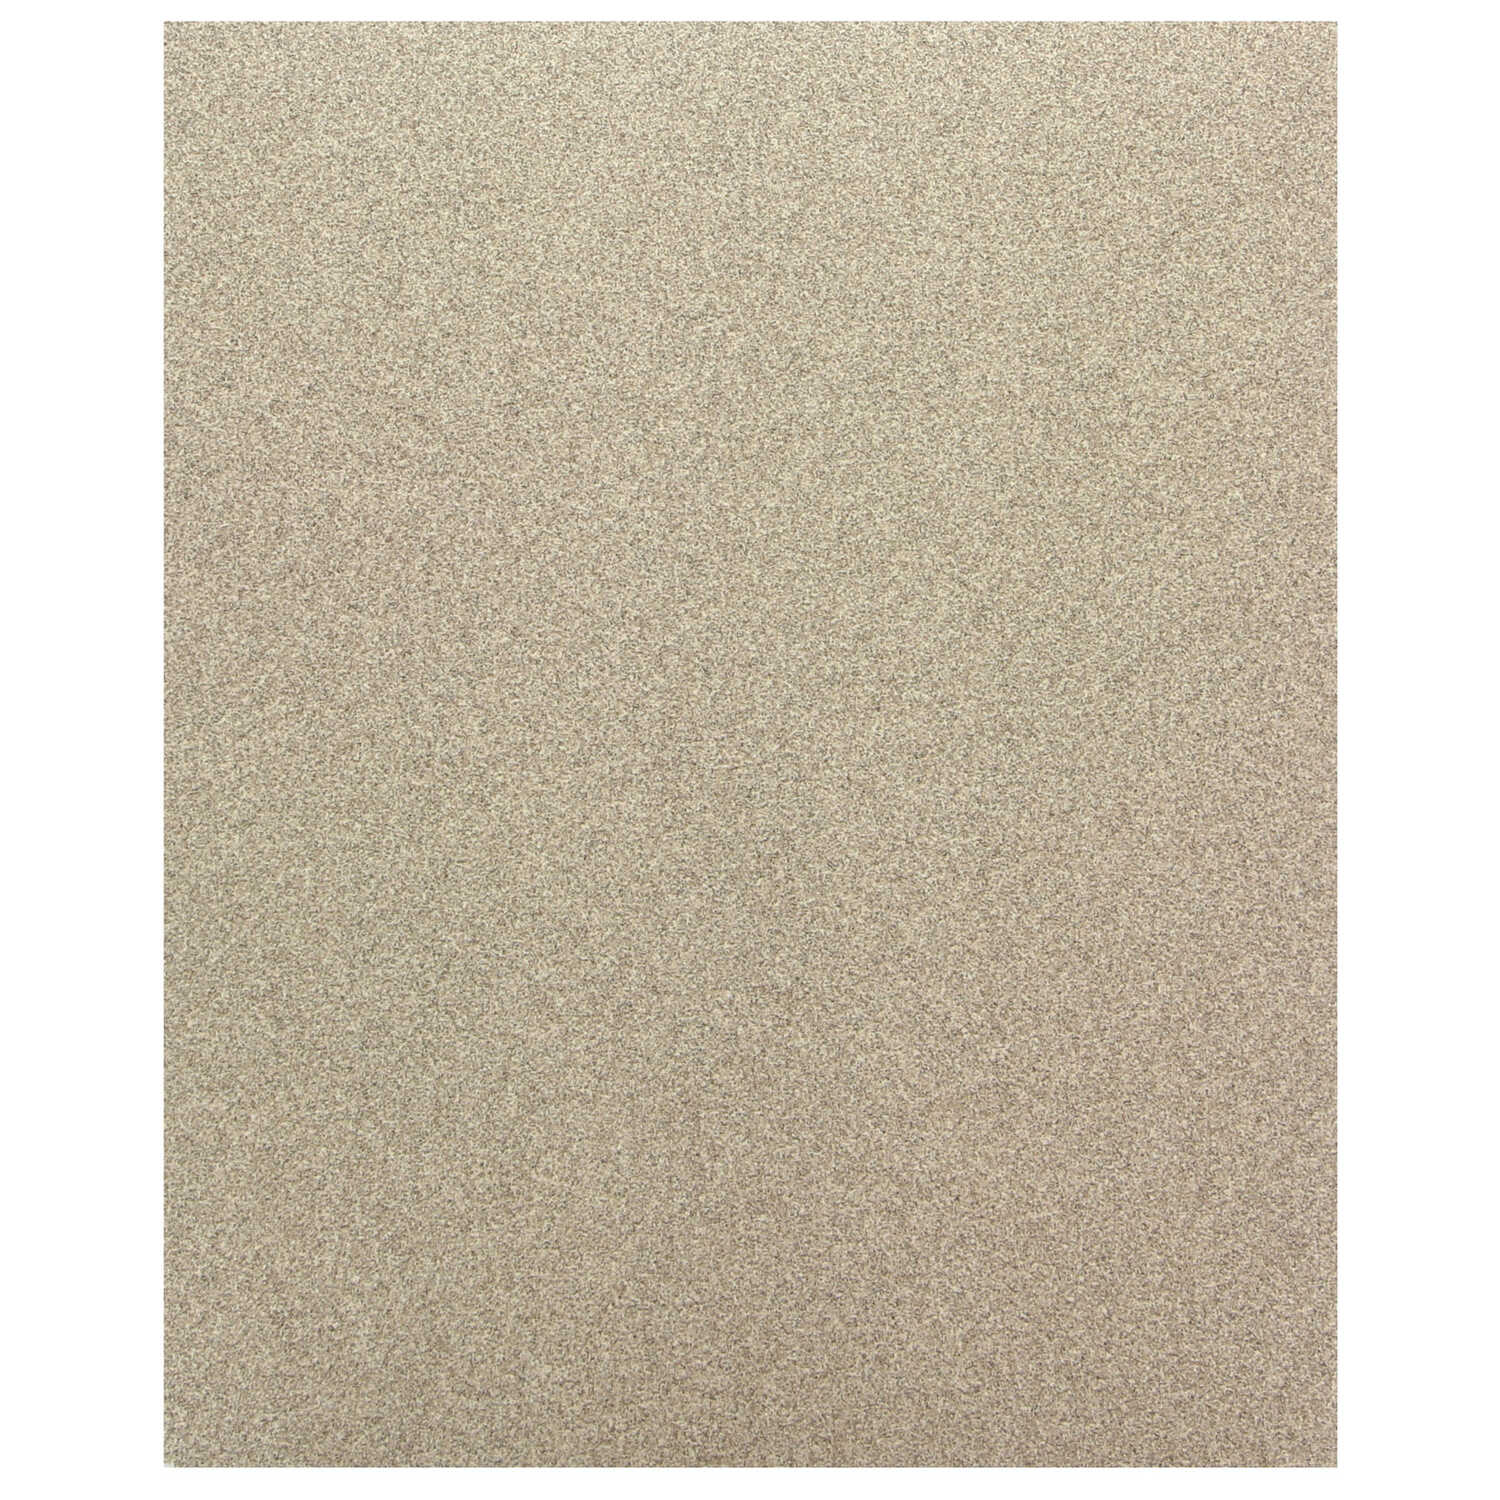 Gator  11 in. L x 9 in. W 100 Grit Medium  Aluminum Oxide  Sandpaper  1 pc.